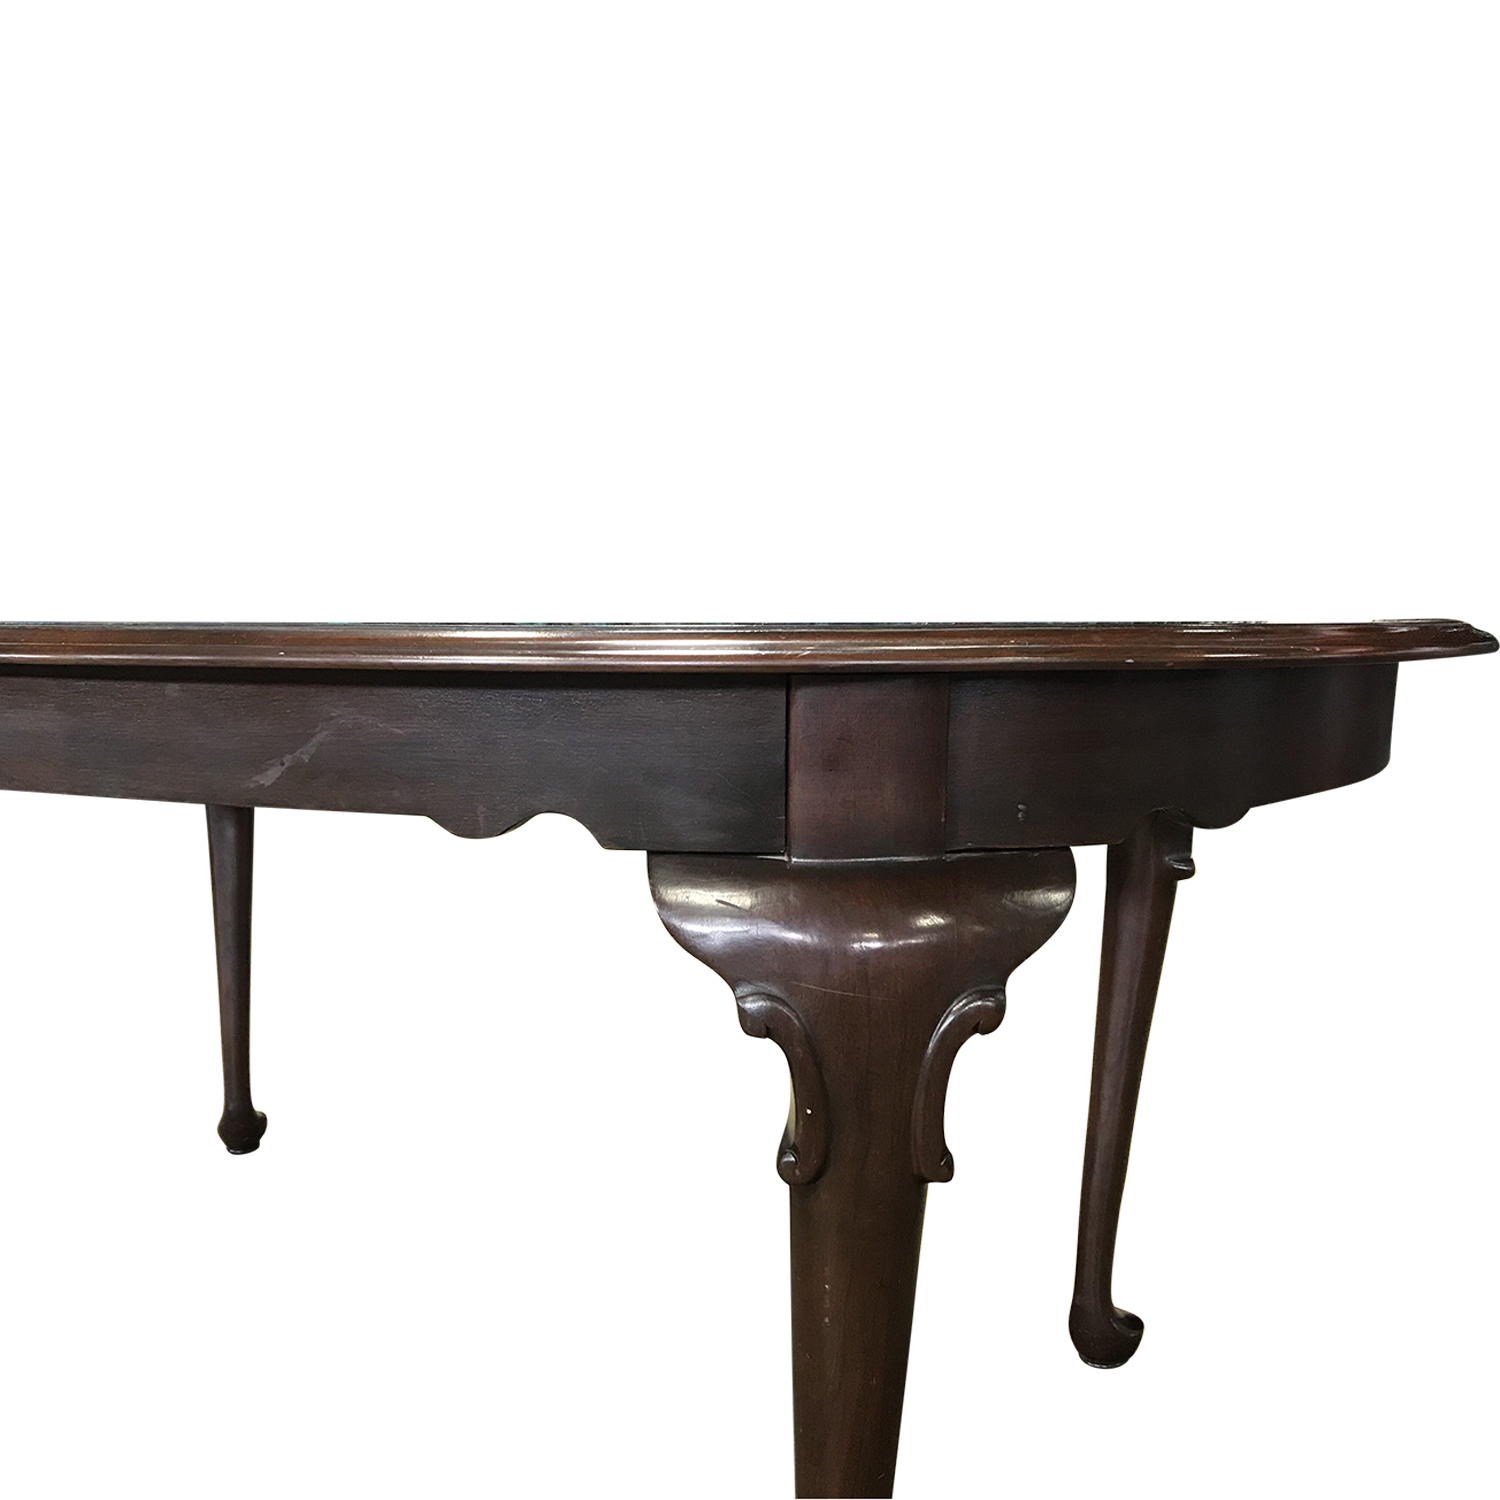 Ethan Allen Ethan Allen Extension Wood Dining Table nj